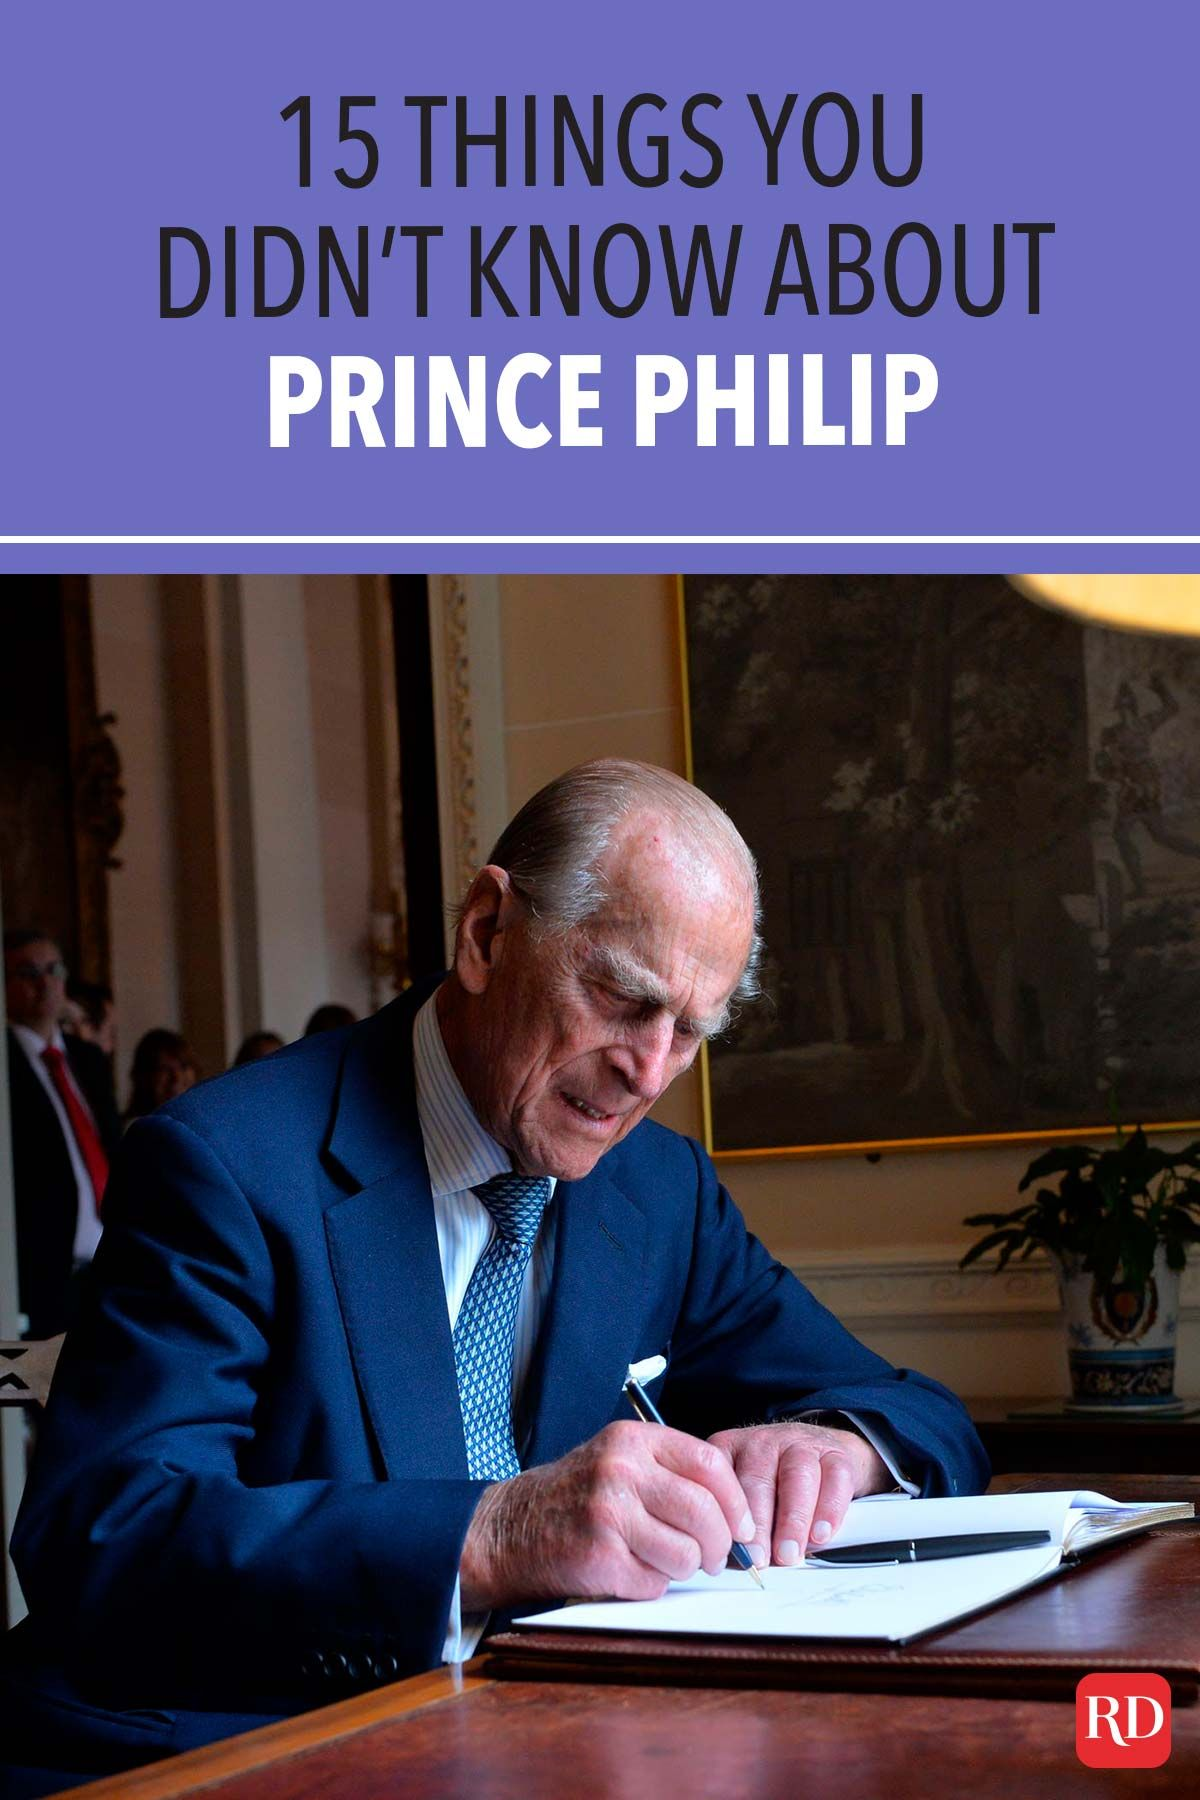 15 Things You Didn't Know About Prince Philip in 2020